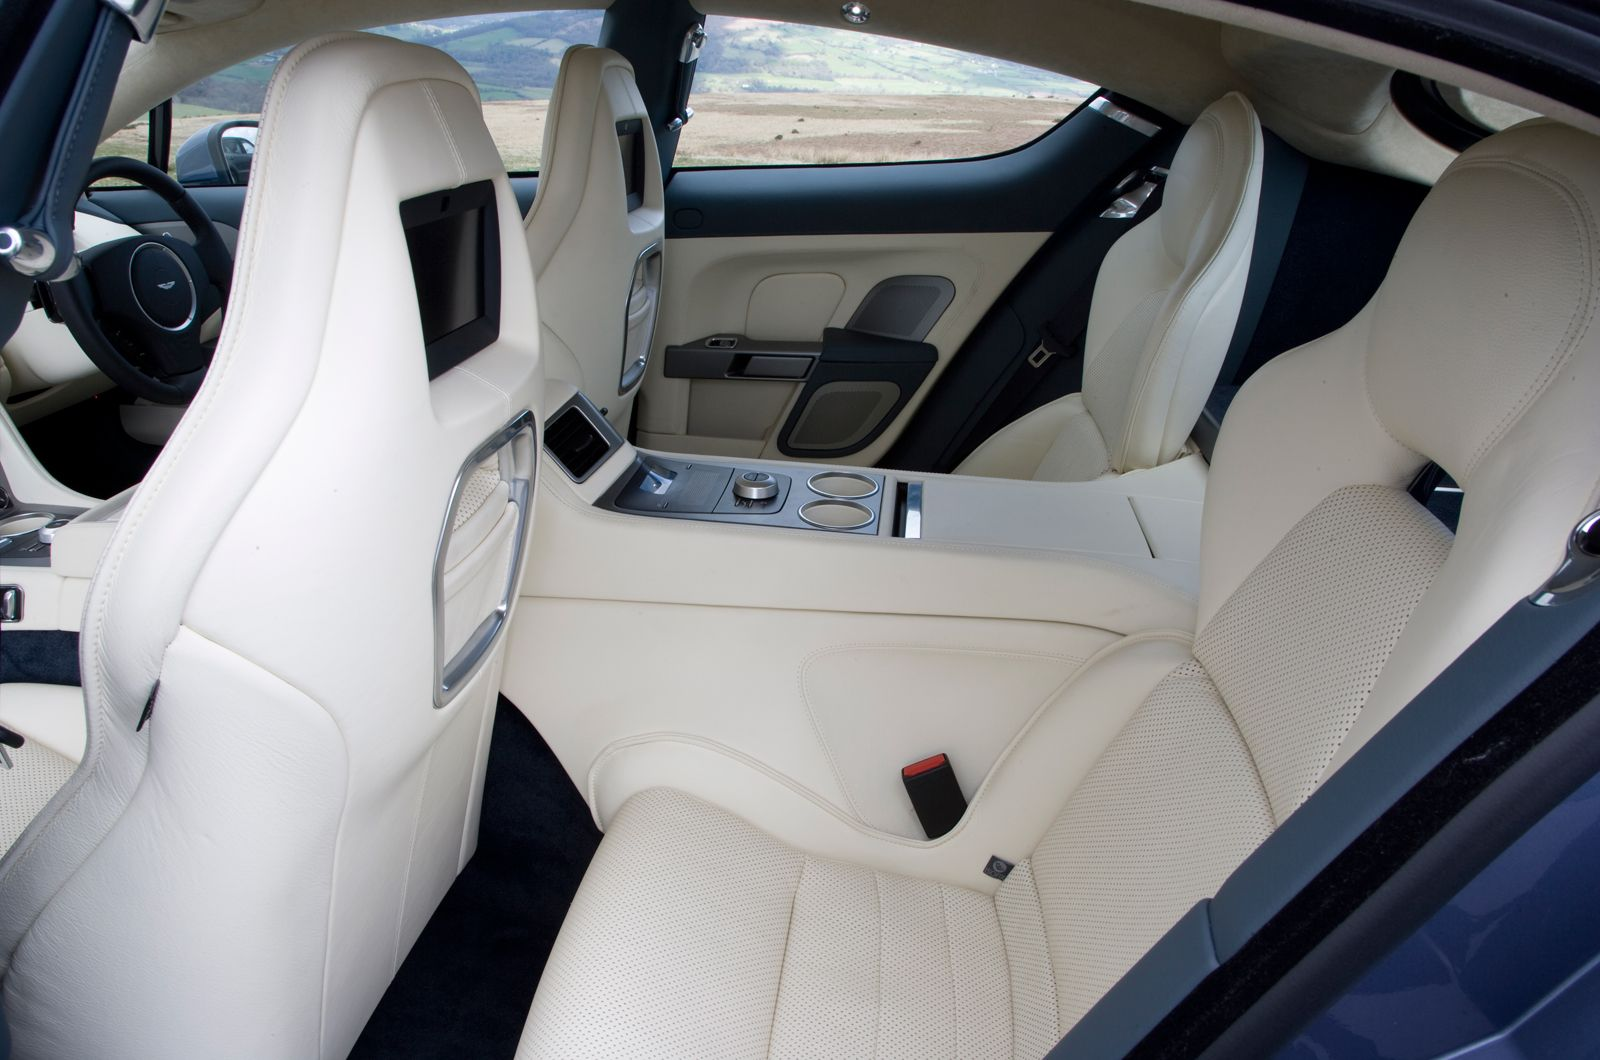 Rear Seats Are Also Comfortable But Space Is Tight Especially For